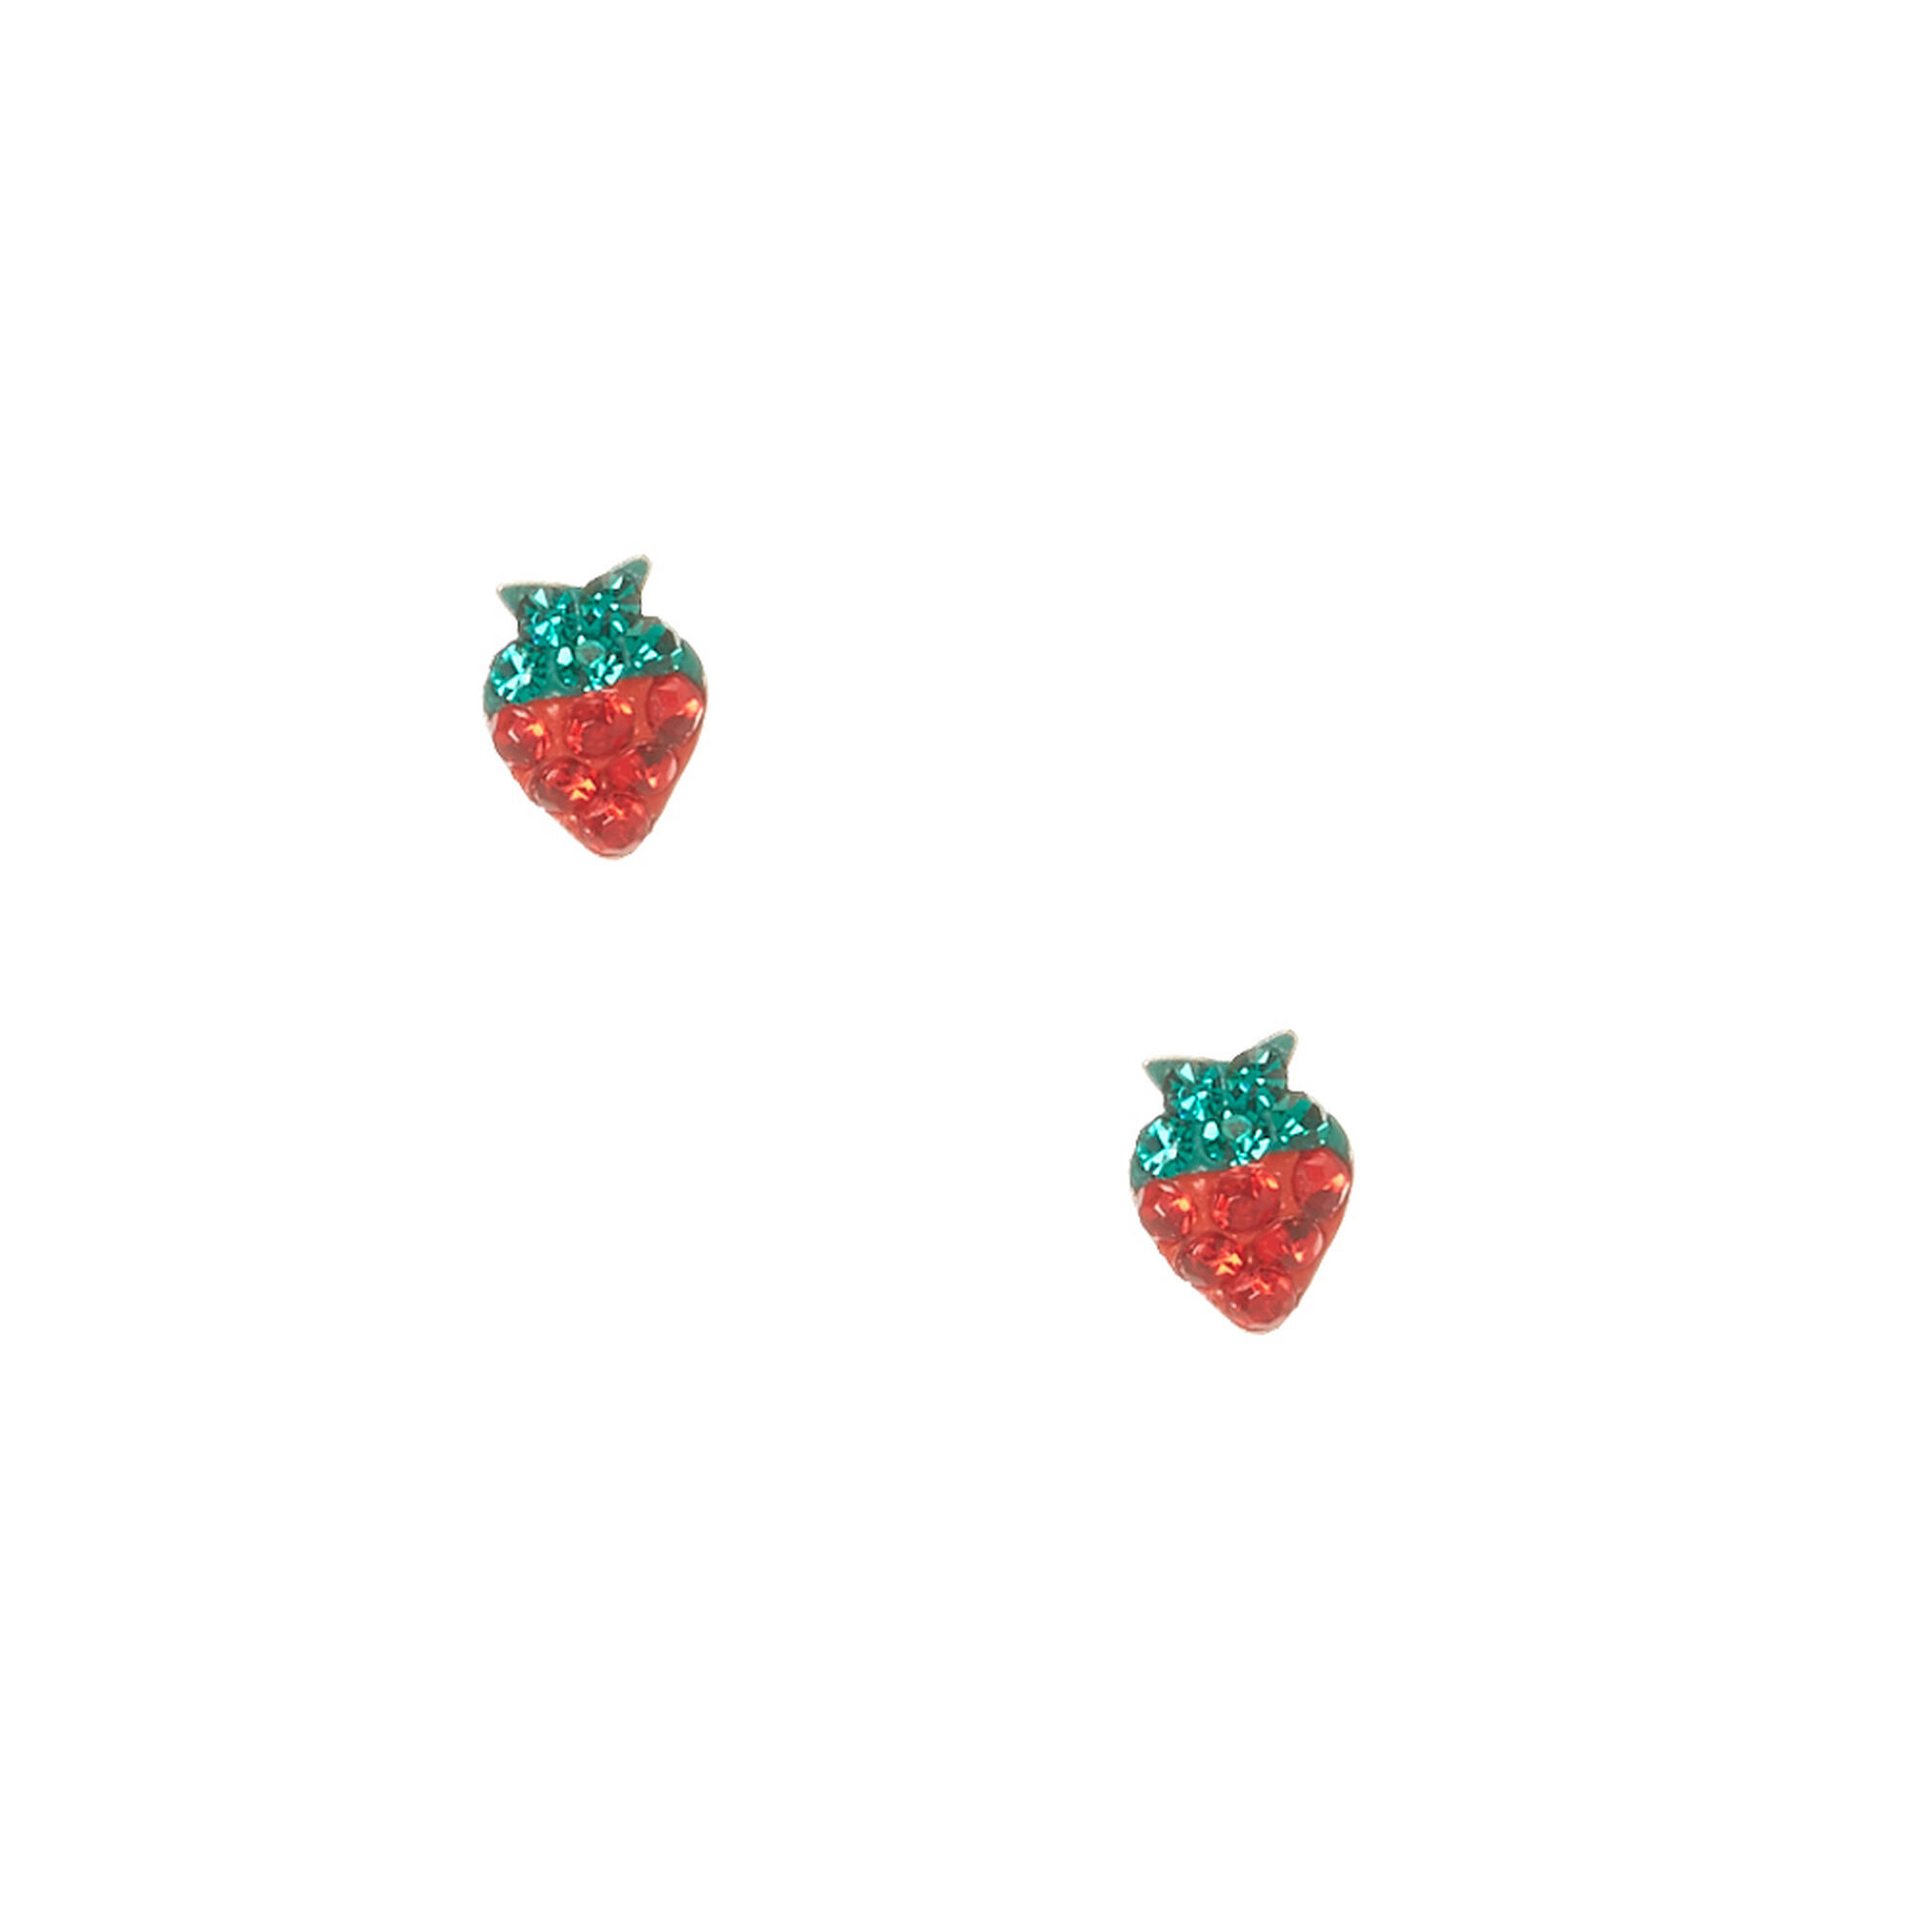 studstrawberry twitter strawberry stud likes retweets ddtavuzuqaahuet fields replies